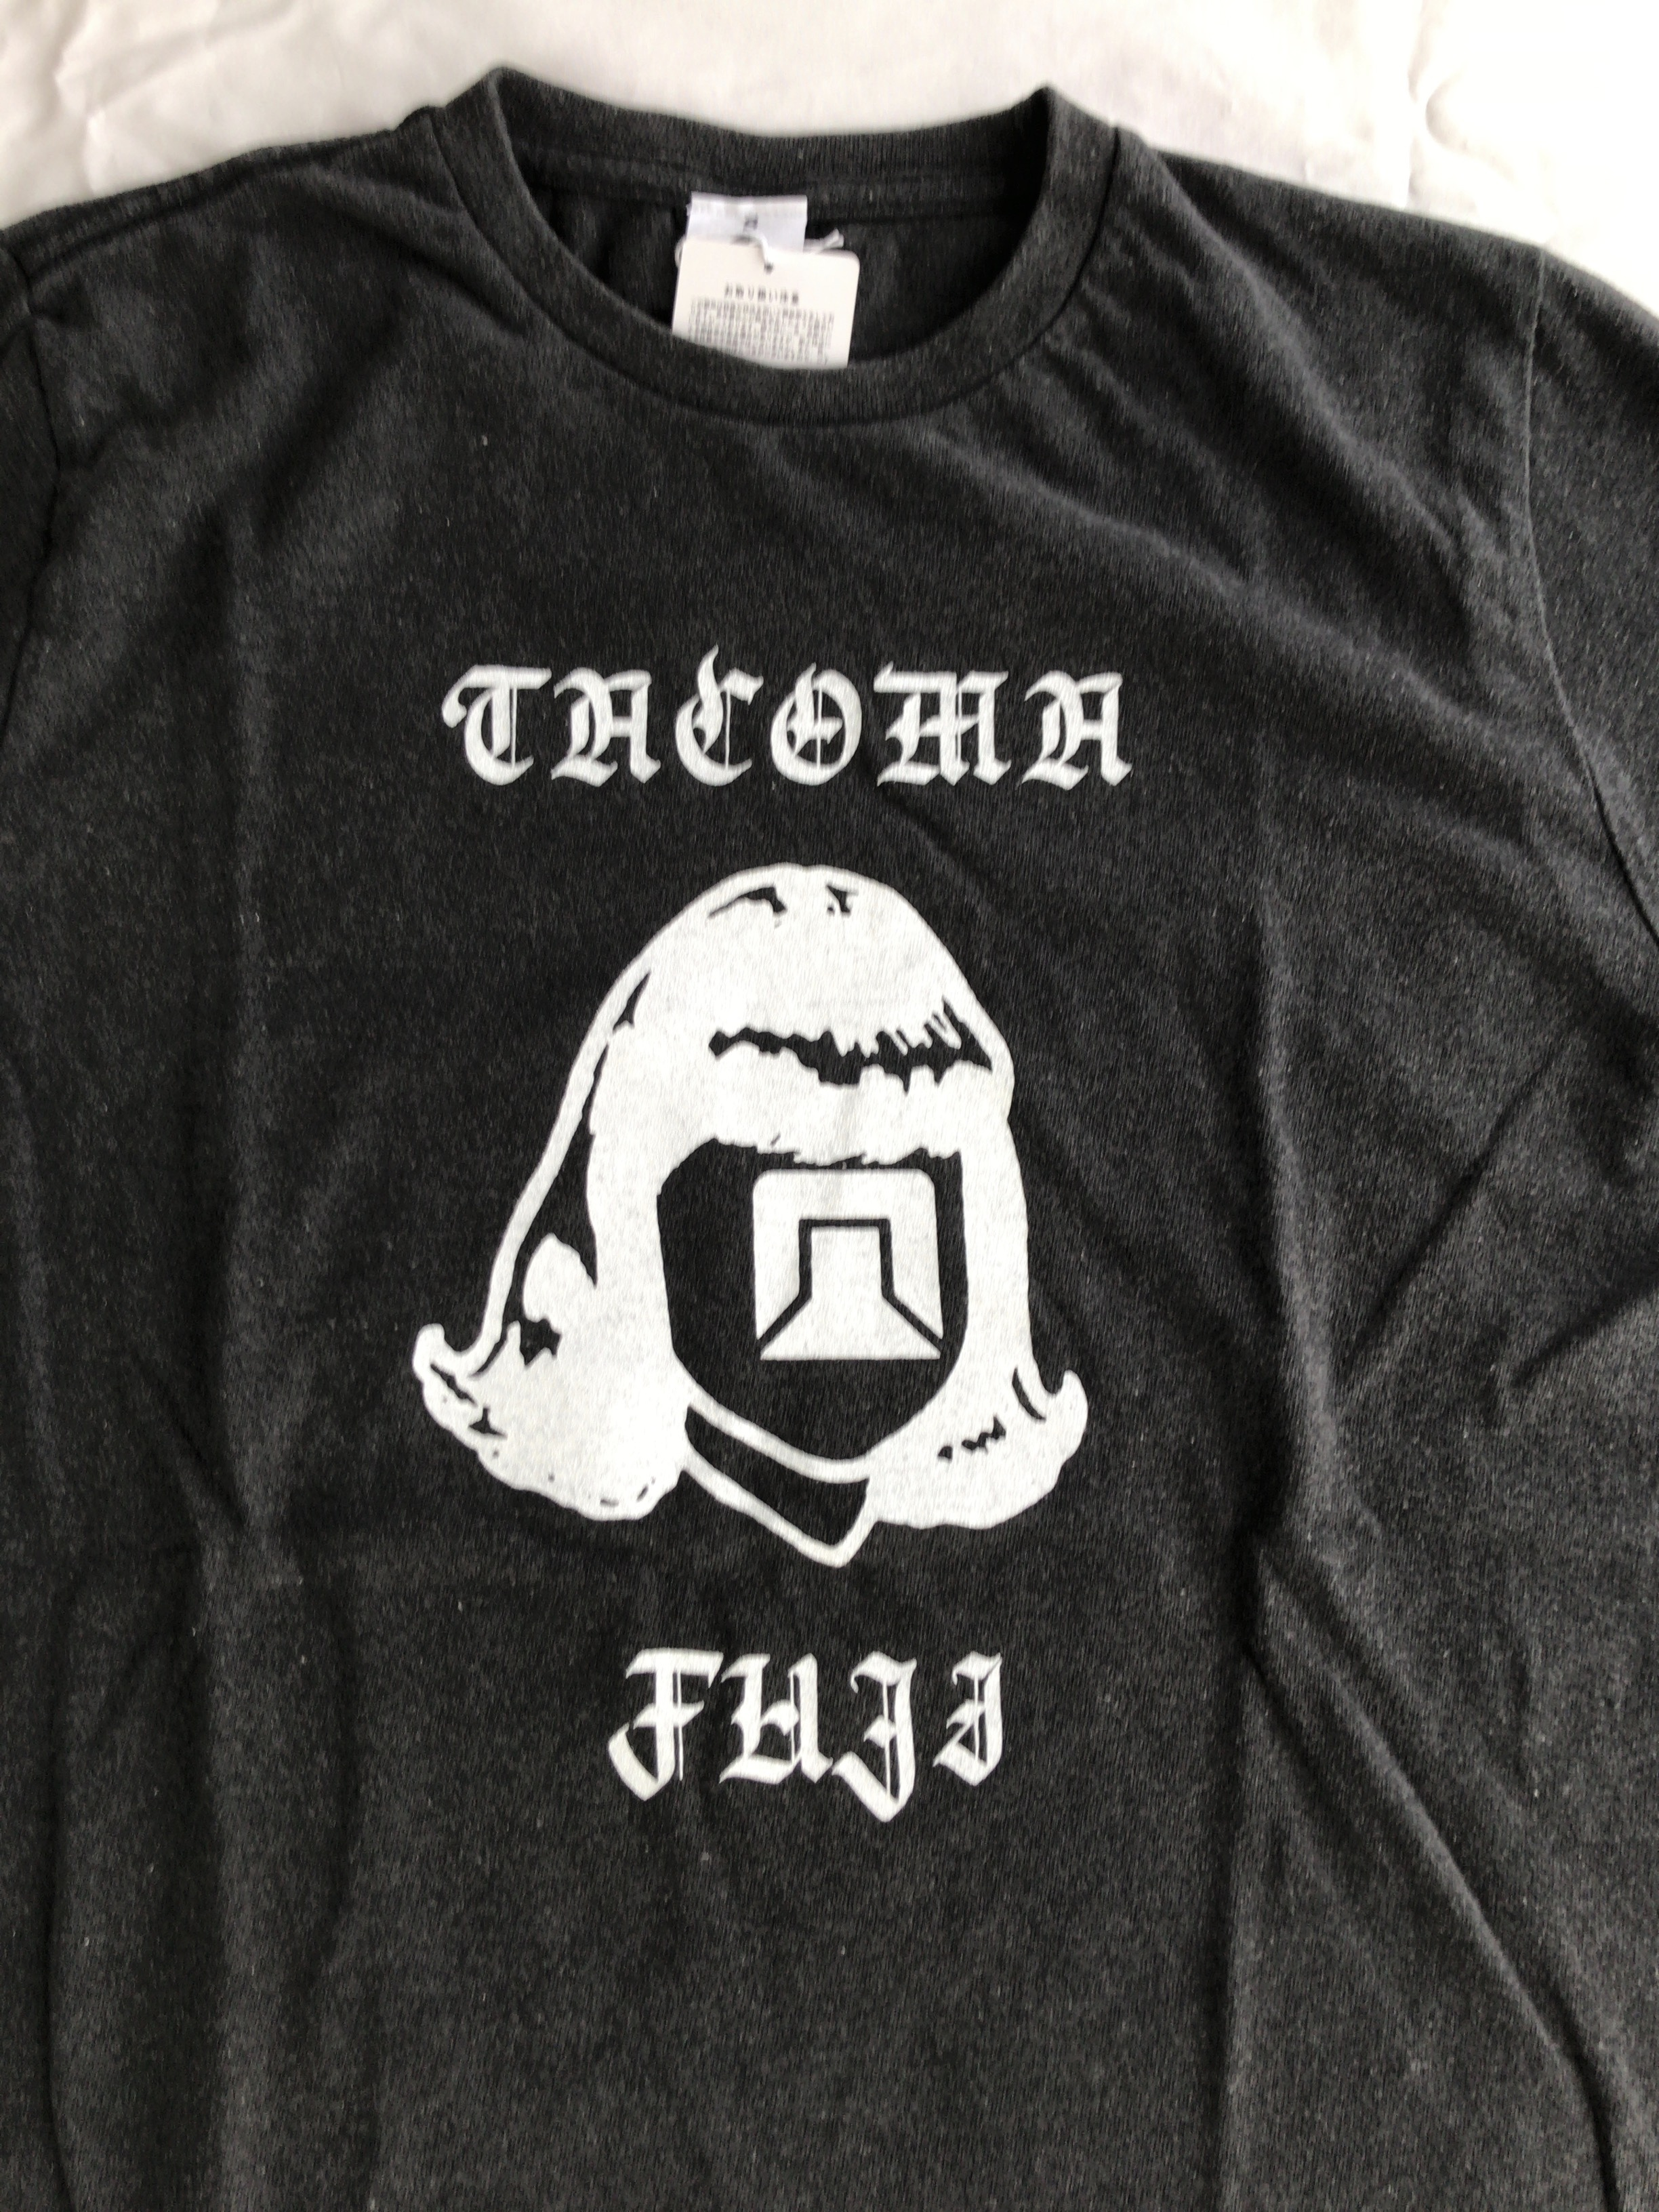 TACOMA FUJI HAND LETTERING LOGO  designed by Letterboy